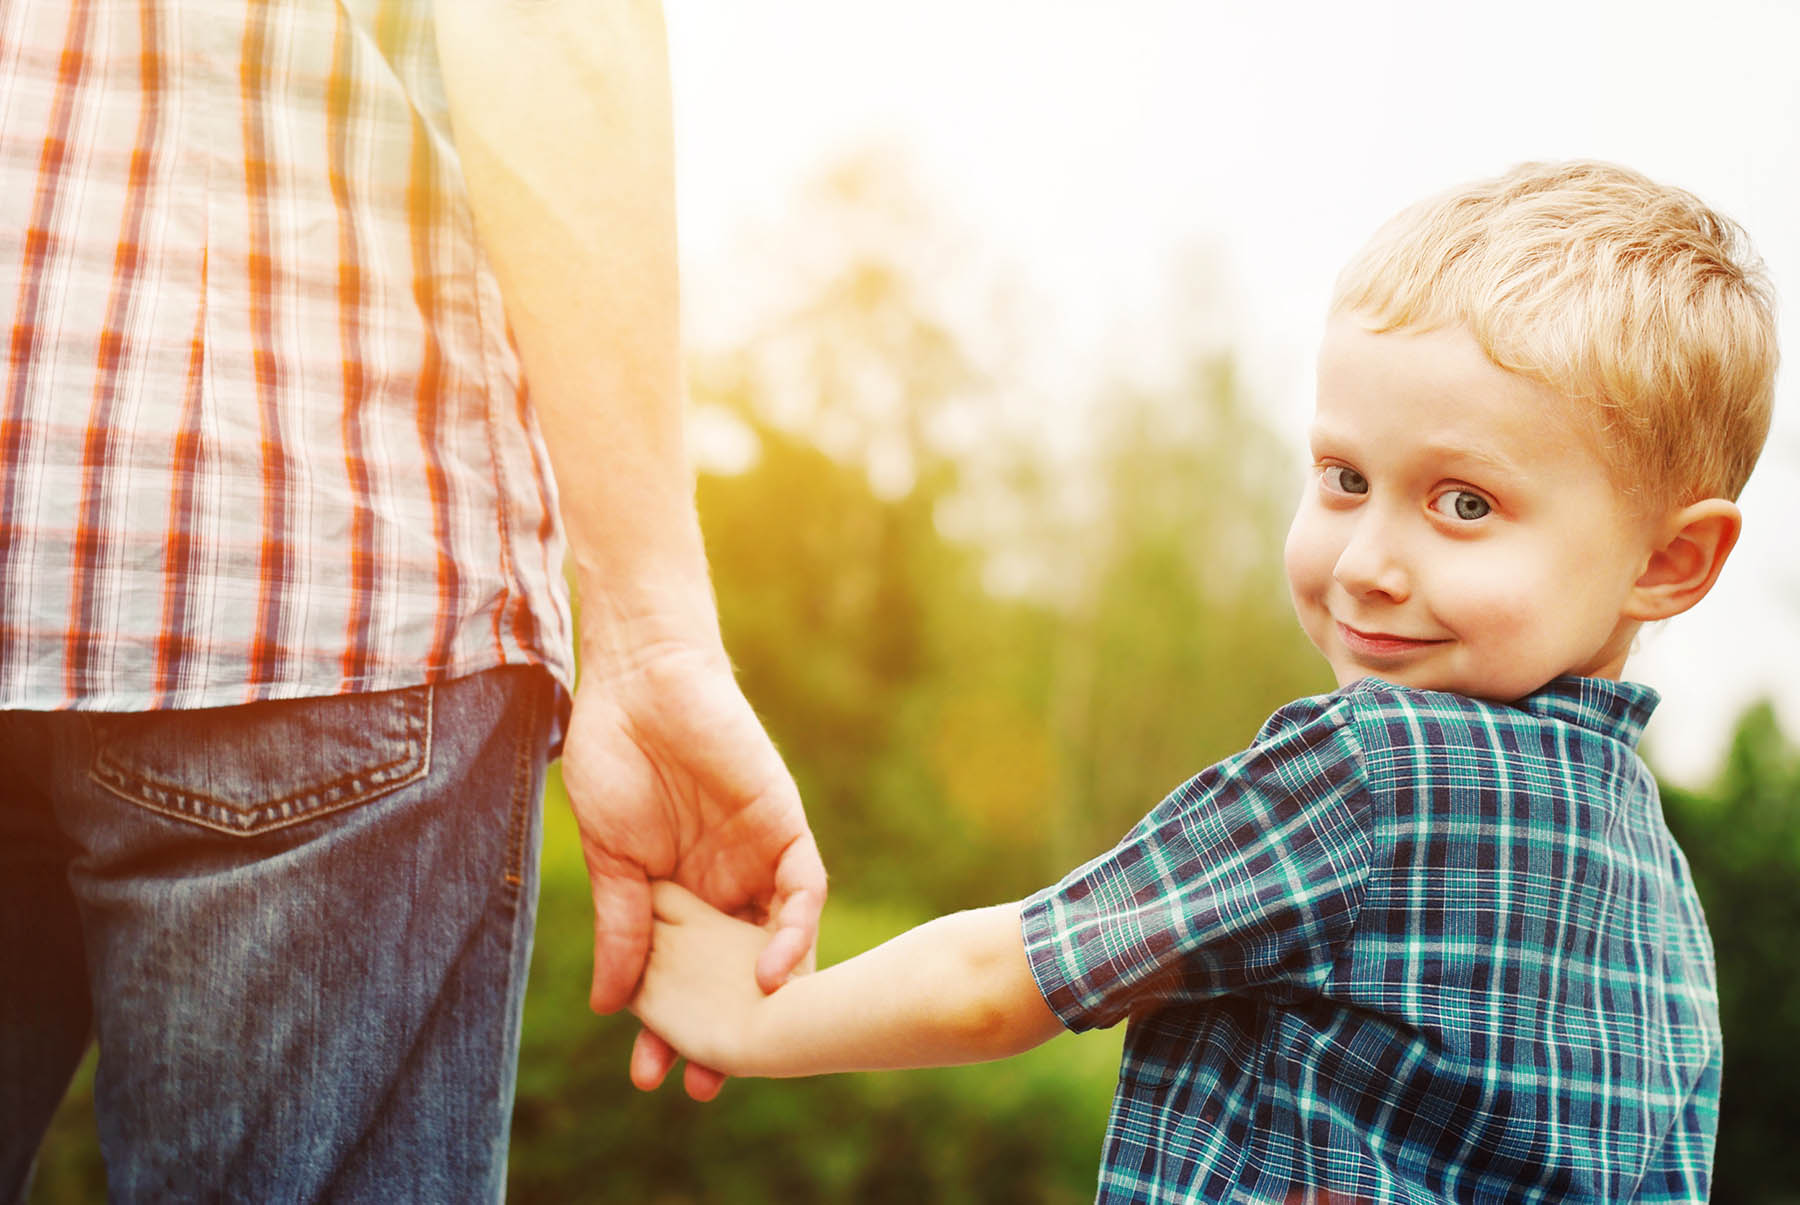 Boy smiling holding dad's hand